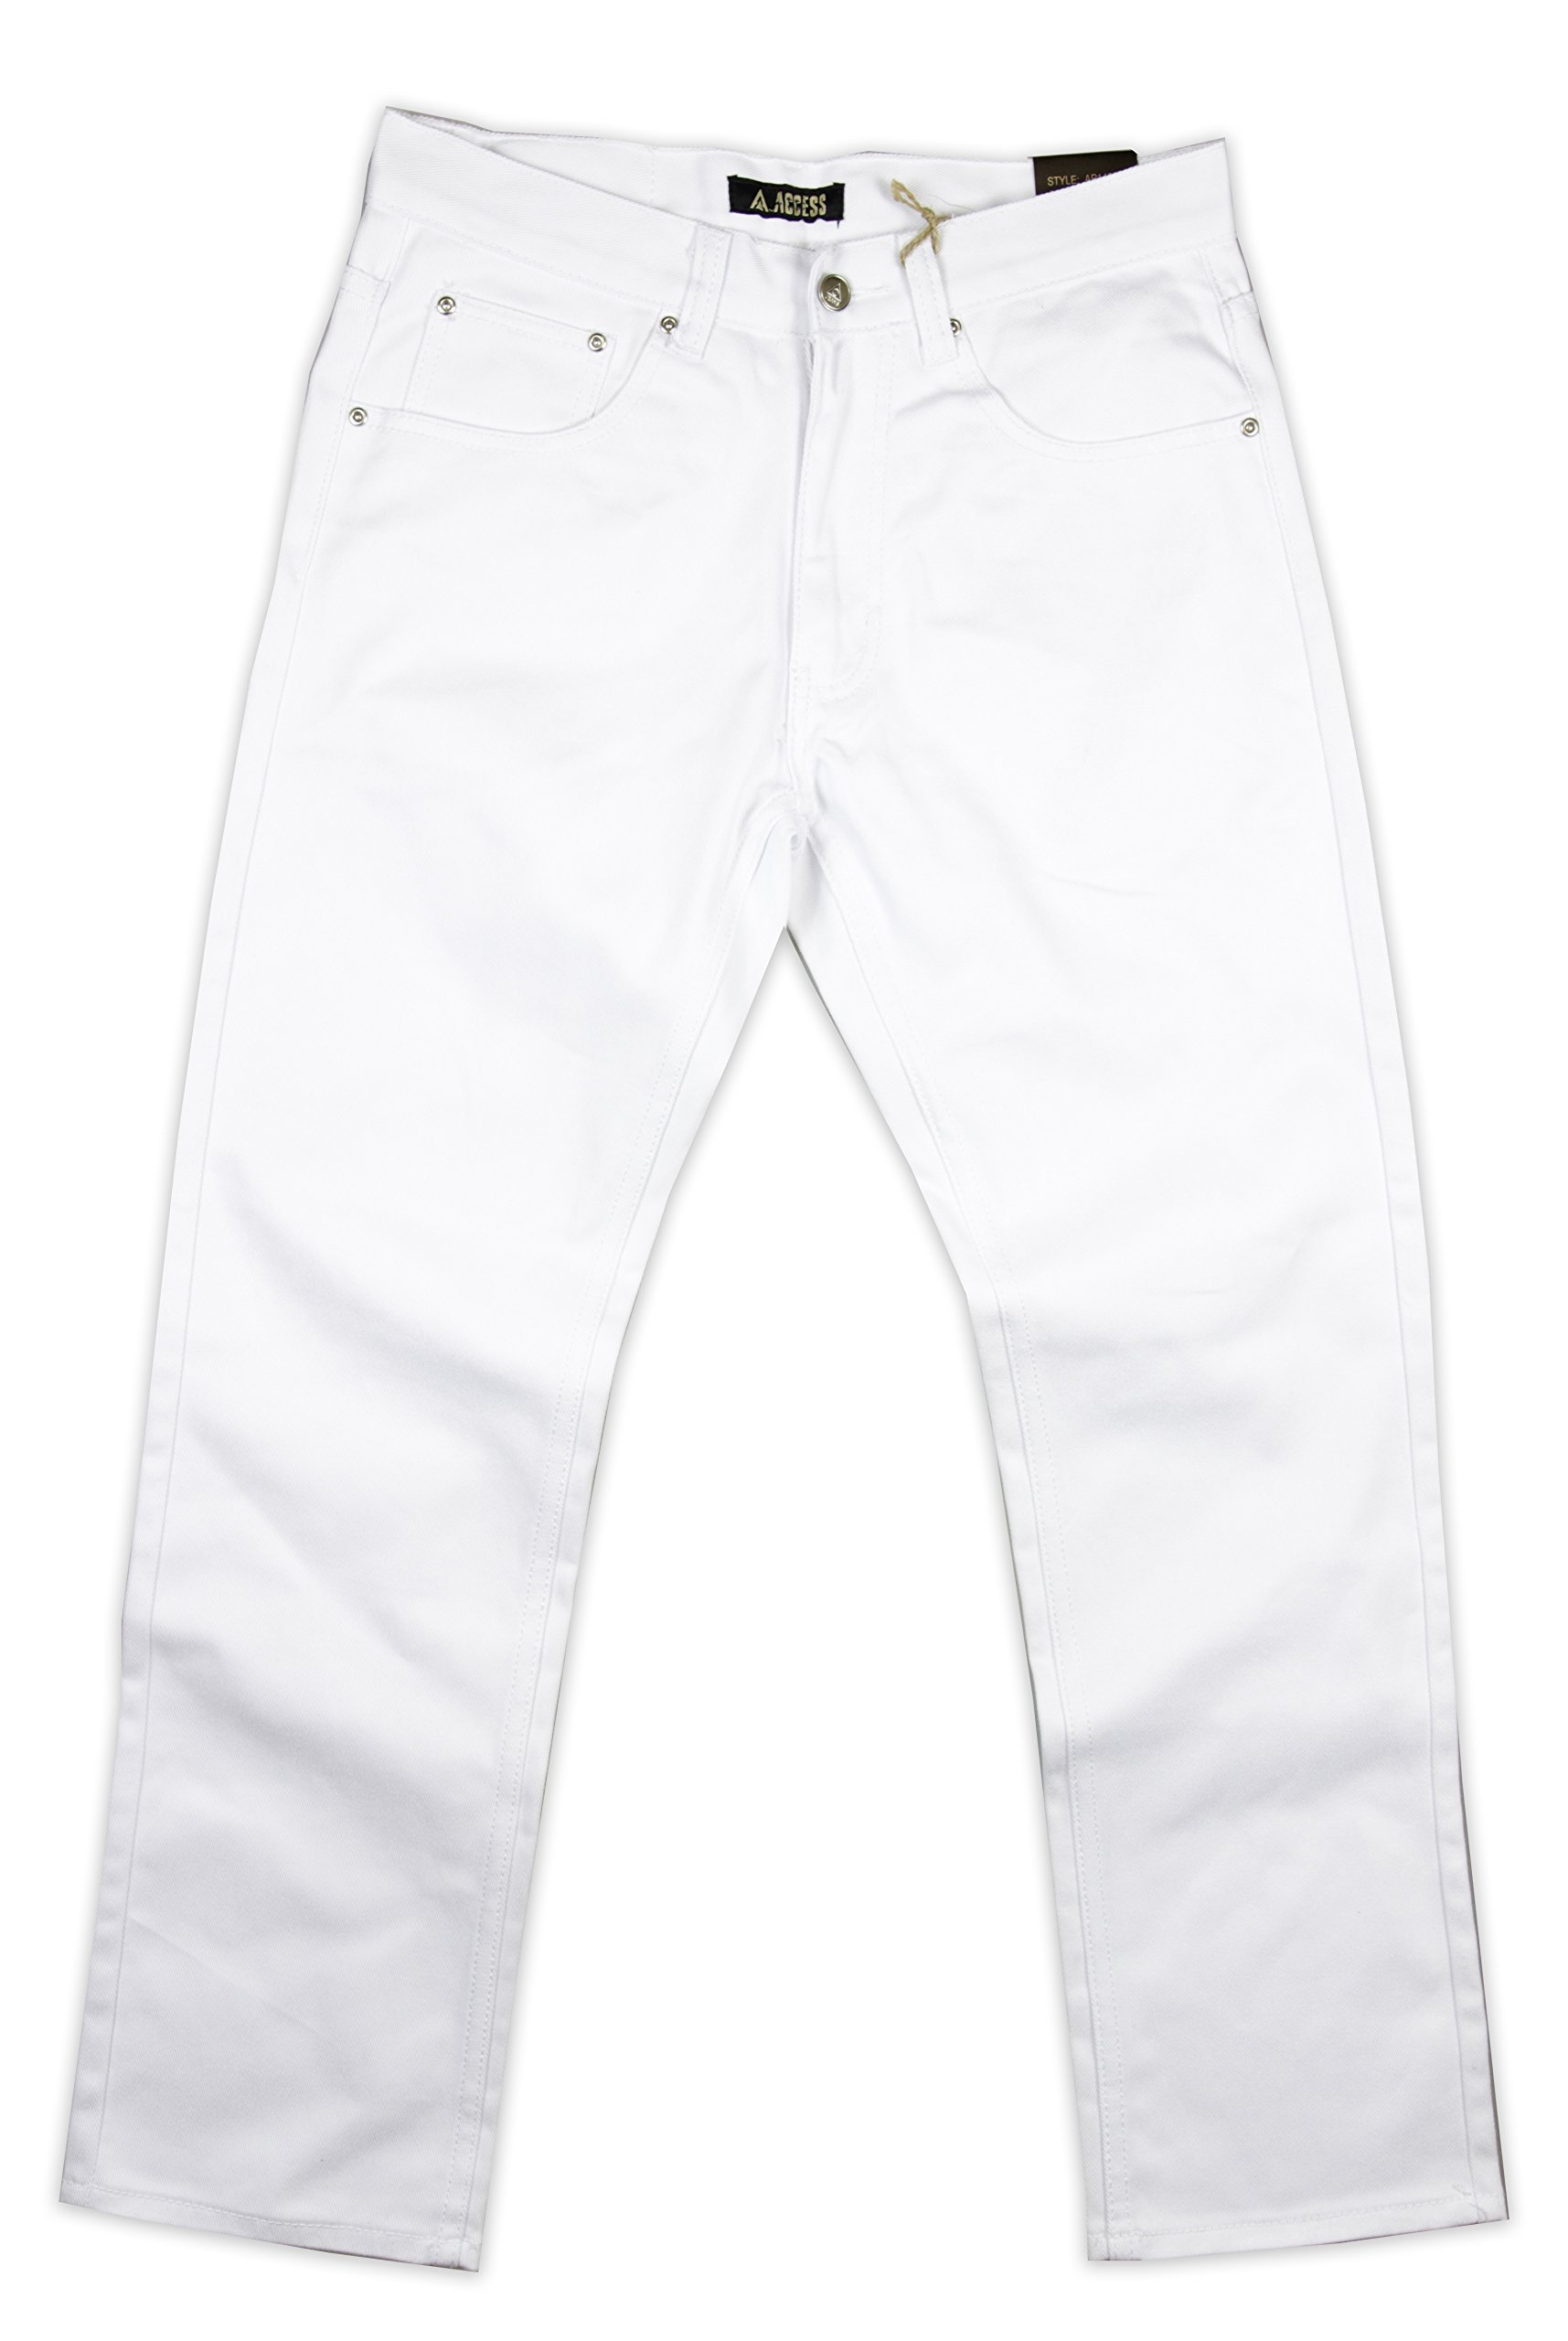 Access Men's Big & Tall Solid Color Twill Jeans (48, White)